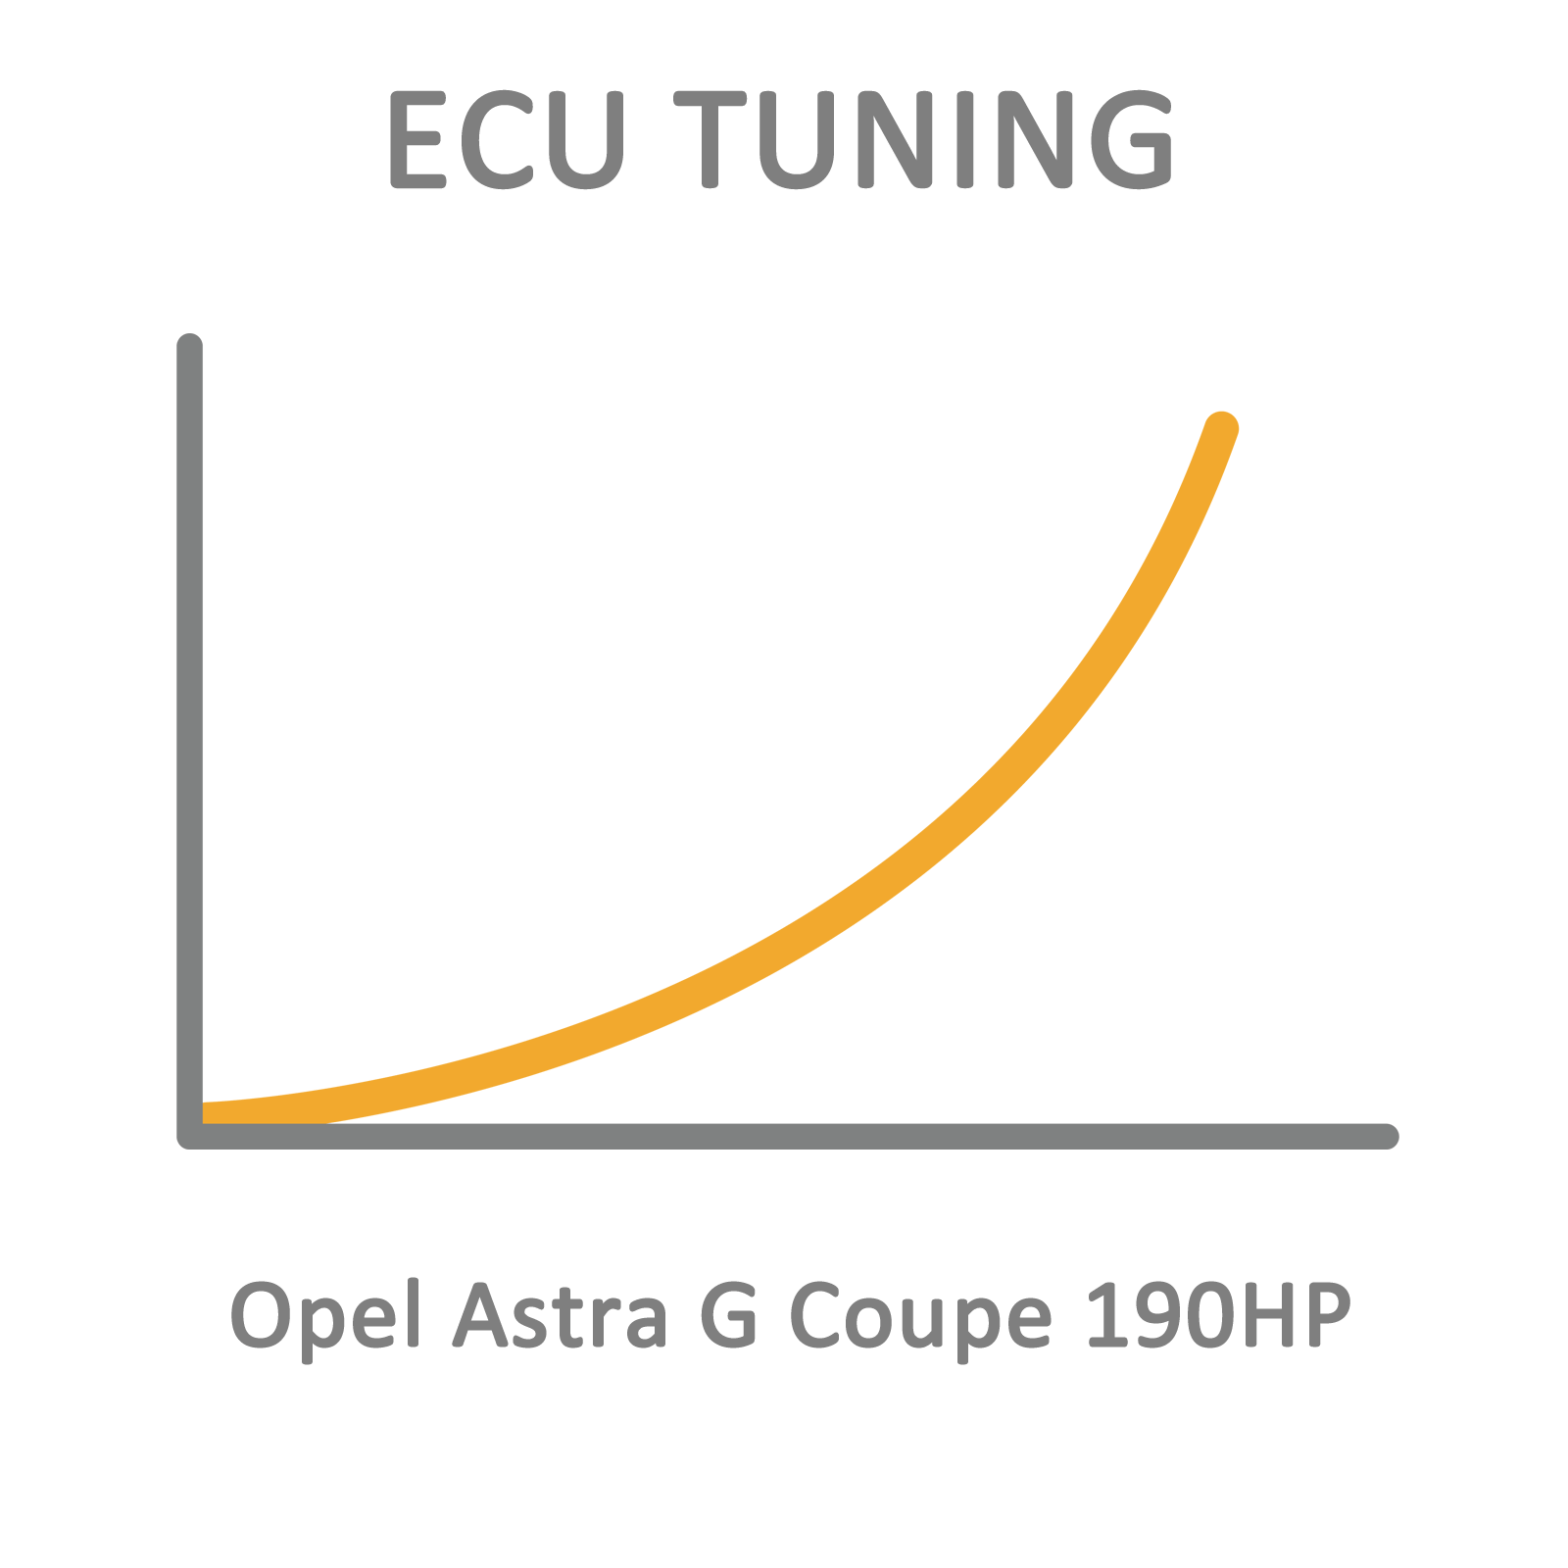 Opel Astra G Coupe 190HP ECU Tuning Remapping Programming